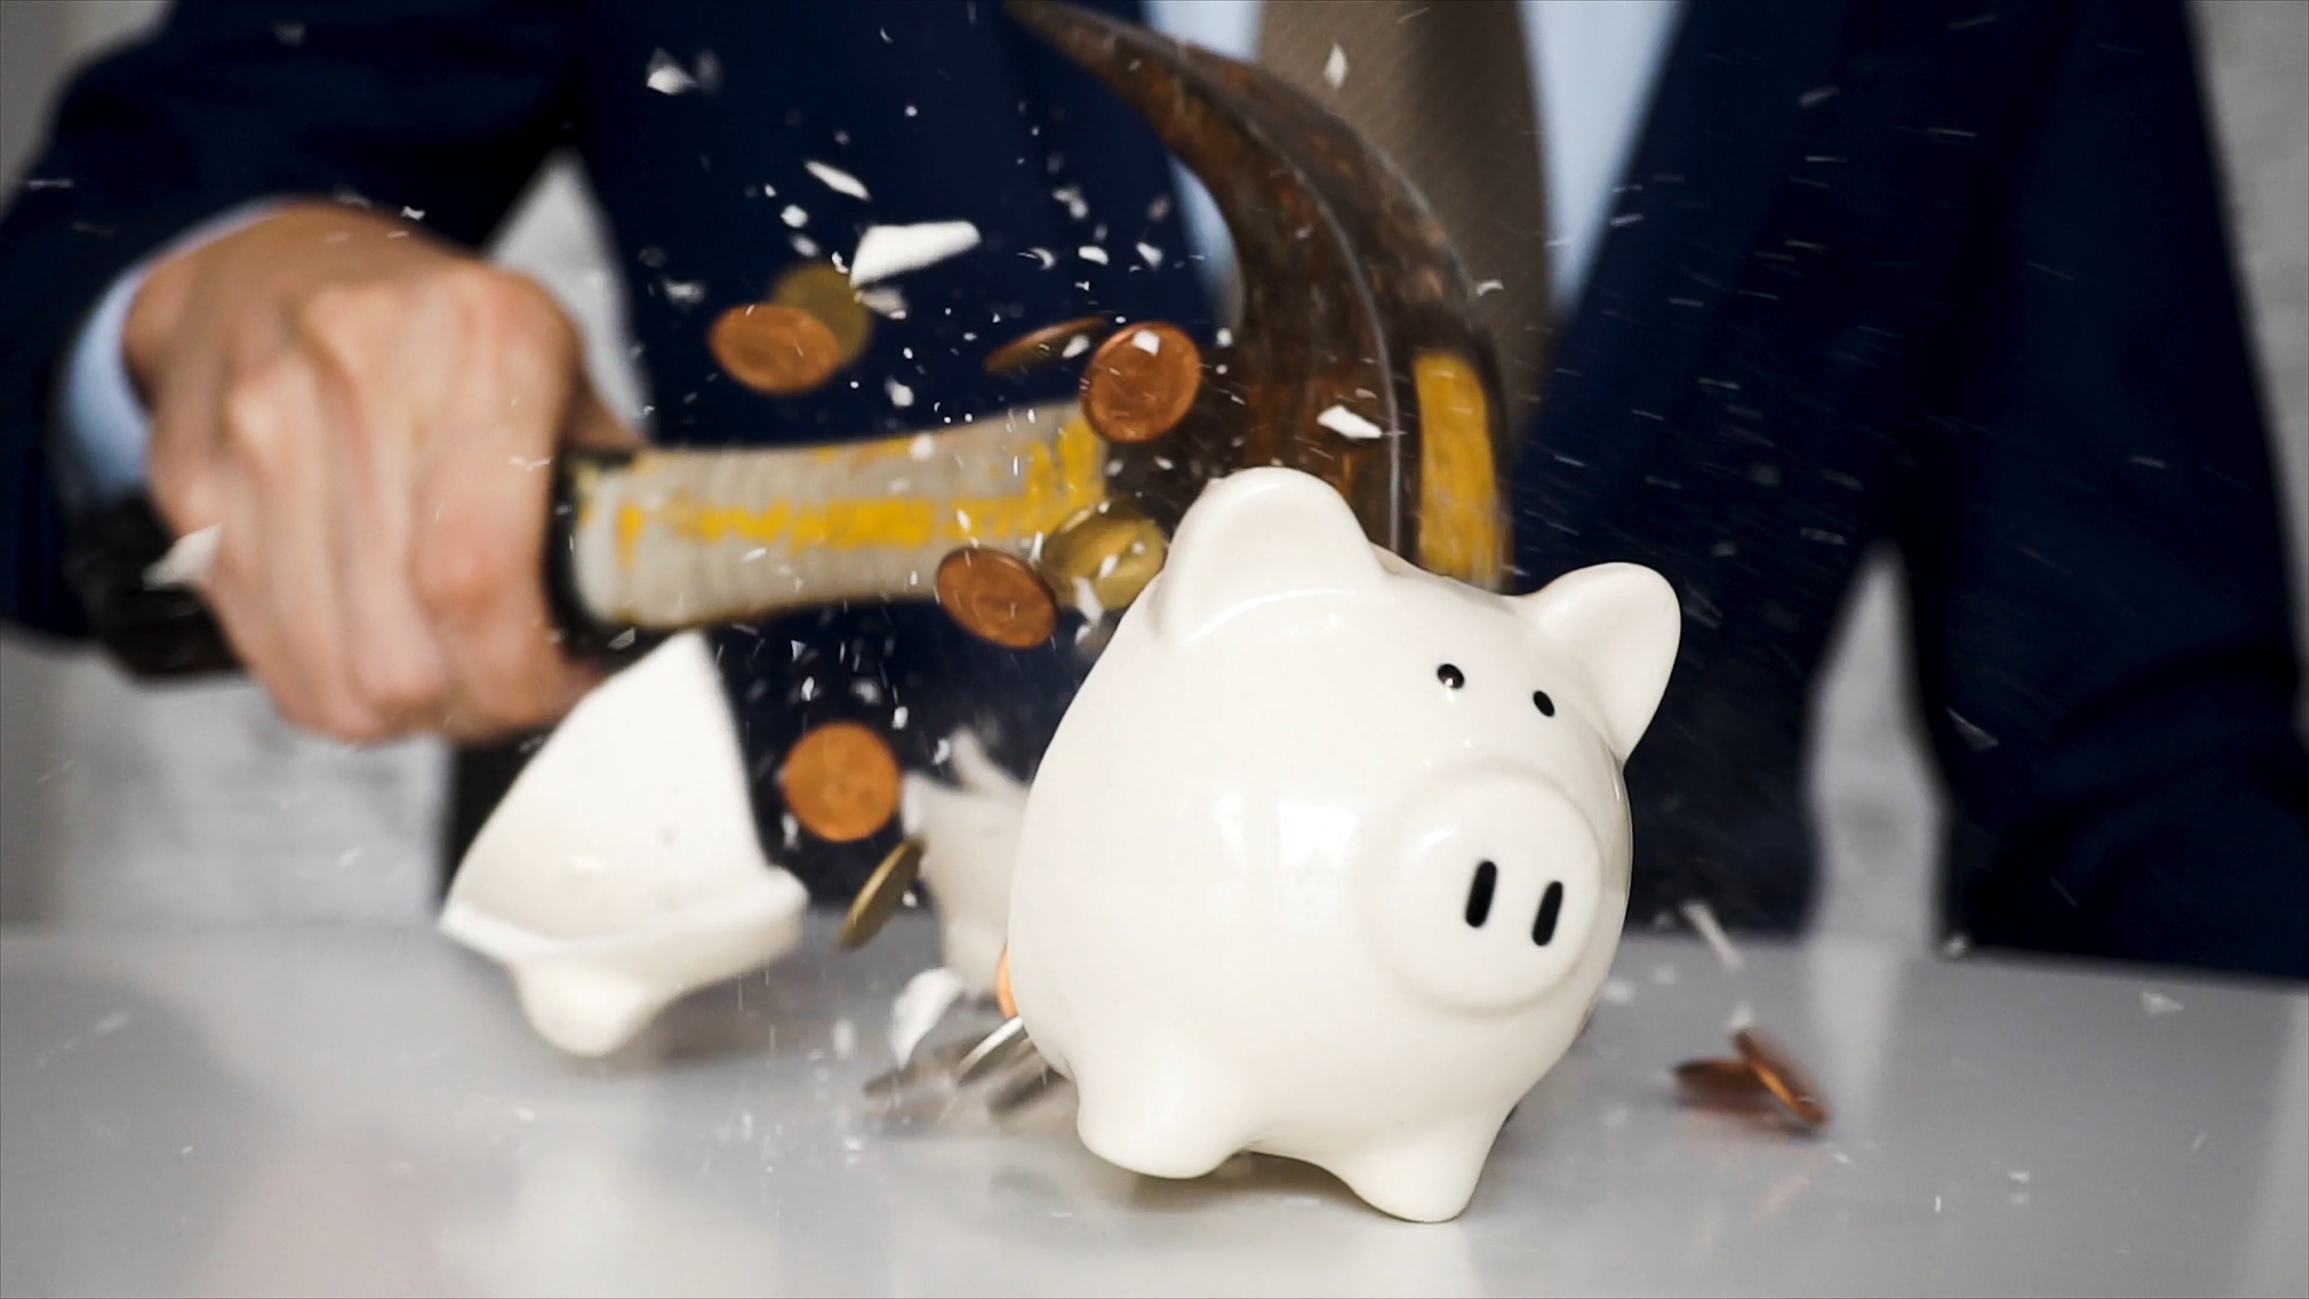 Man in suit shattering piggy bank with hammer.